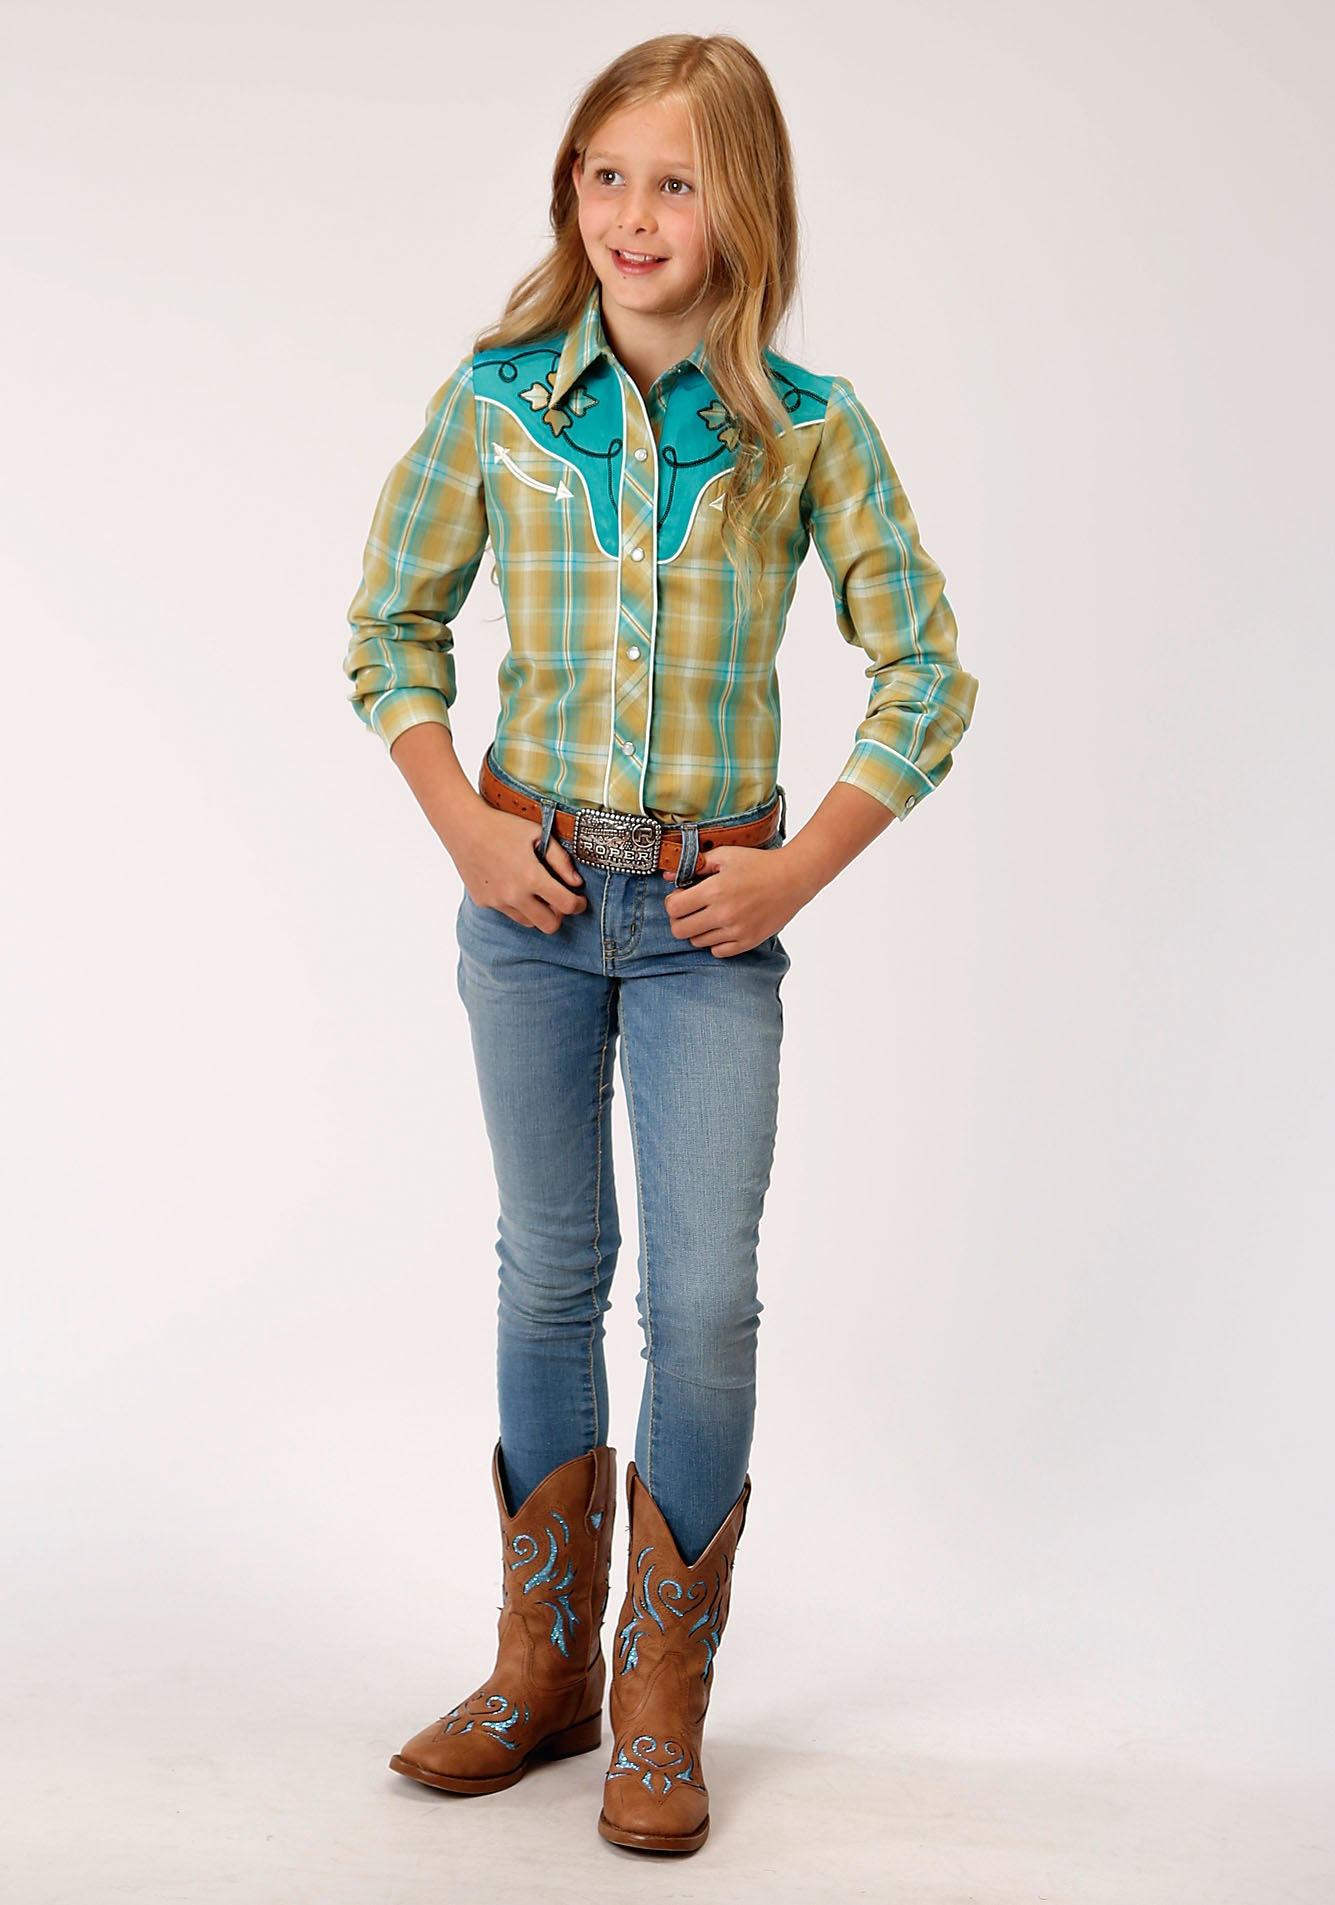 ROPER GIRLS GREEN 00044 CELERY & TURQUOISE PLAID KARMAN SPECIAL STYLES LONG SLEEVE